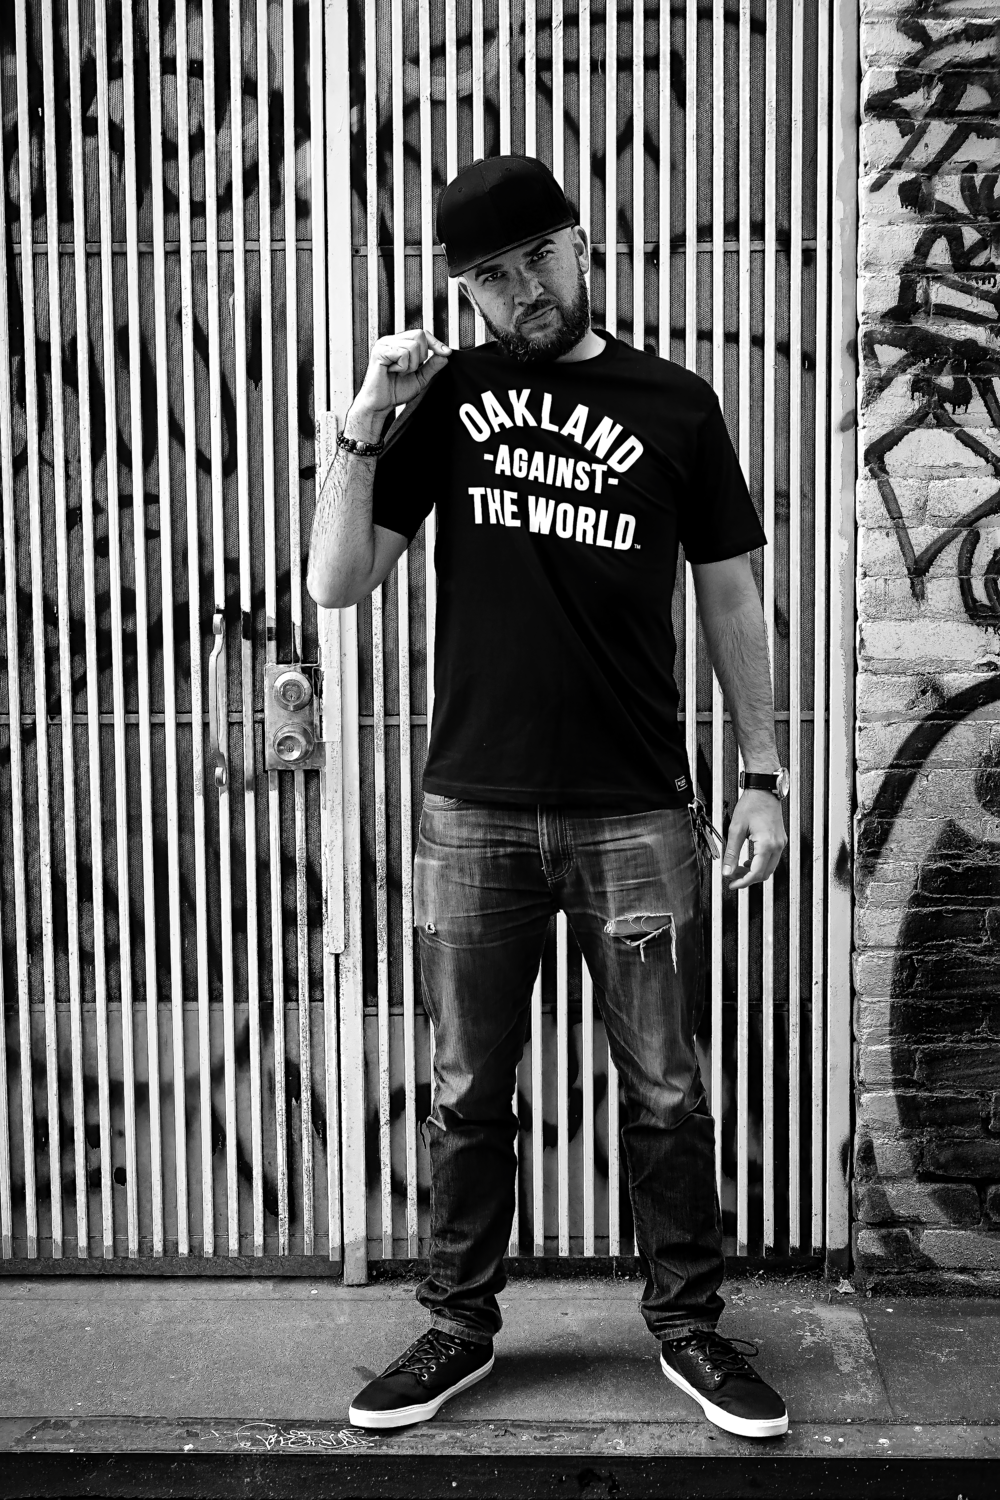 Sky Oak Co_Gallery_Oakland_Against_the_World_black_tee_color_pop.png